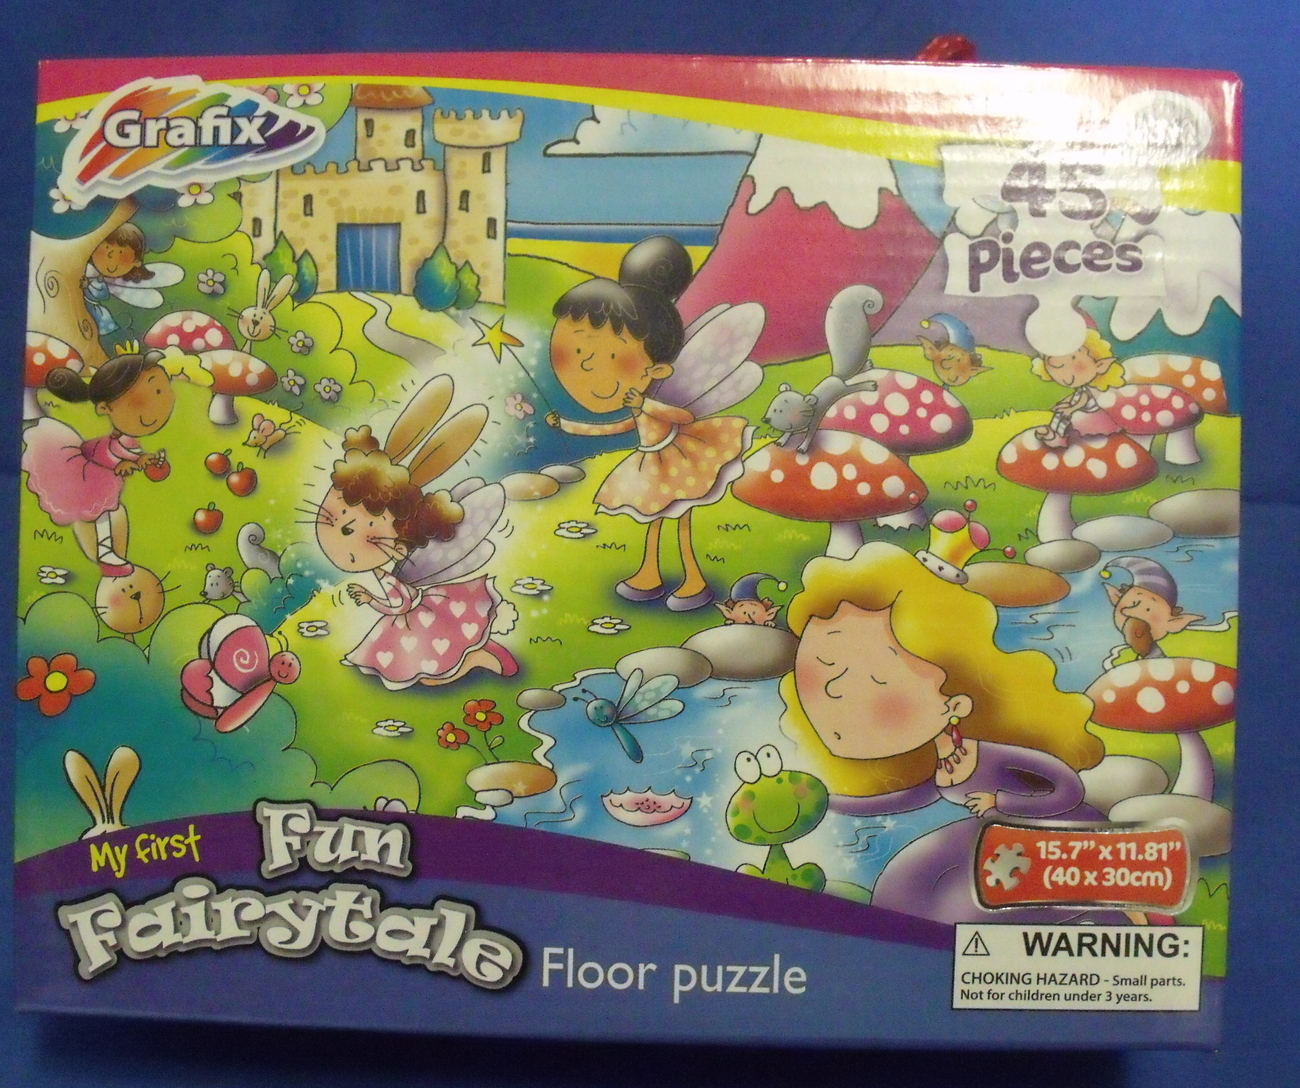 My first fairytale floor puzzle